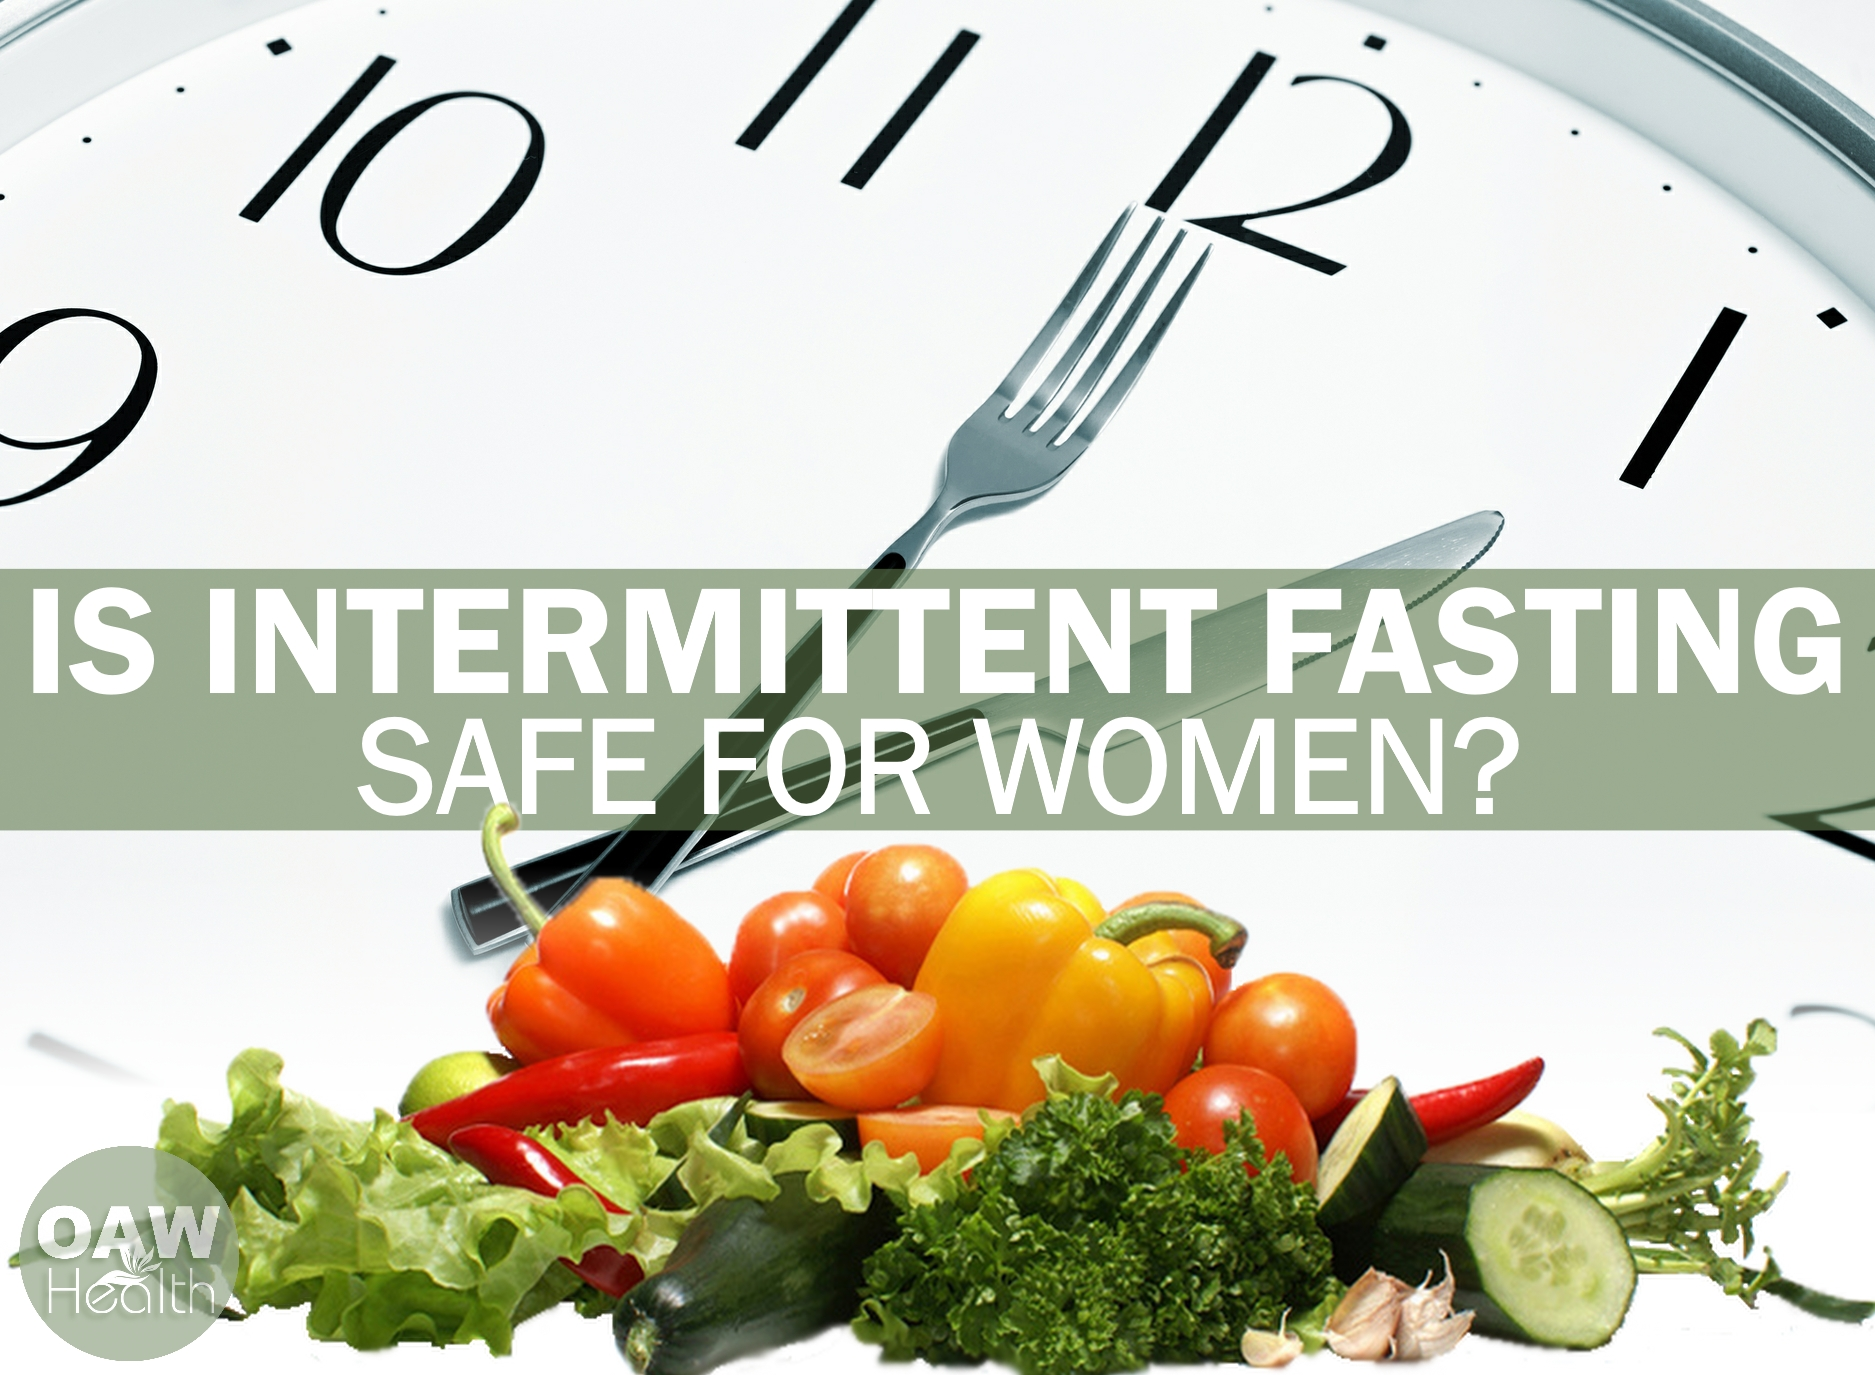 Is Intermittent Fasting Safe for Women?